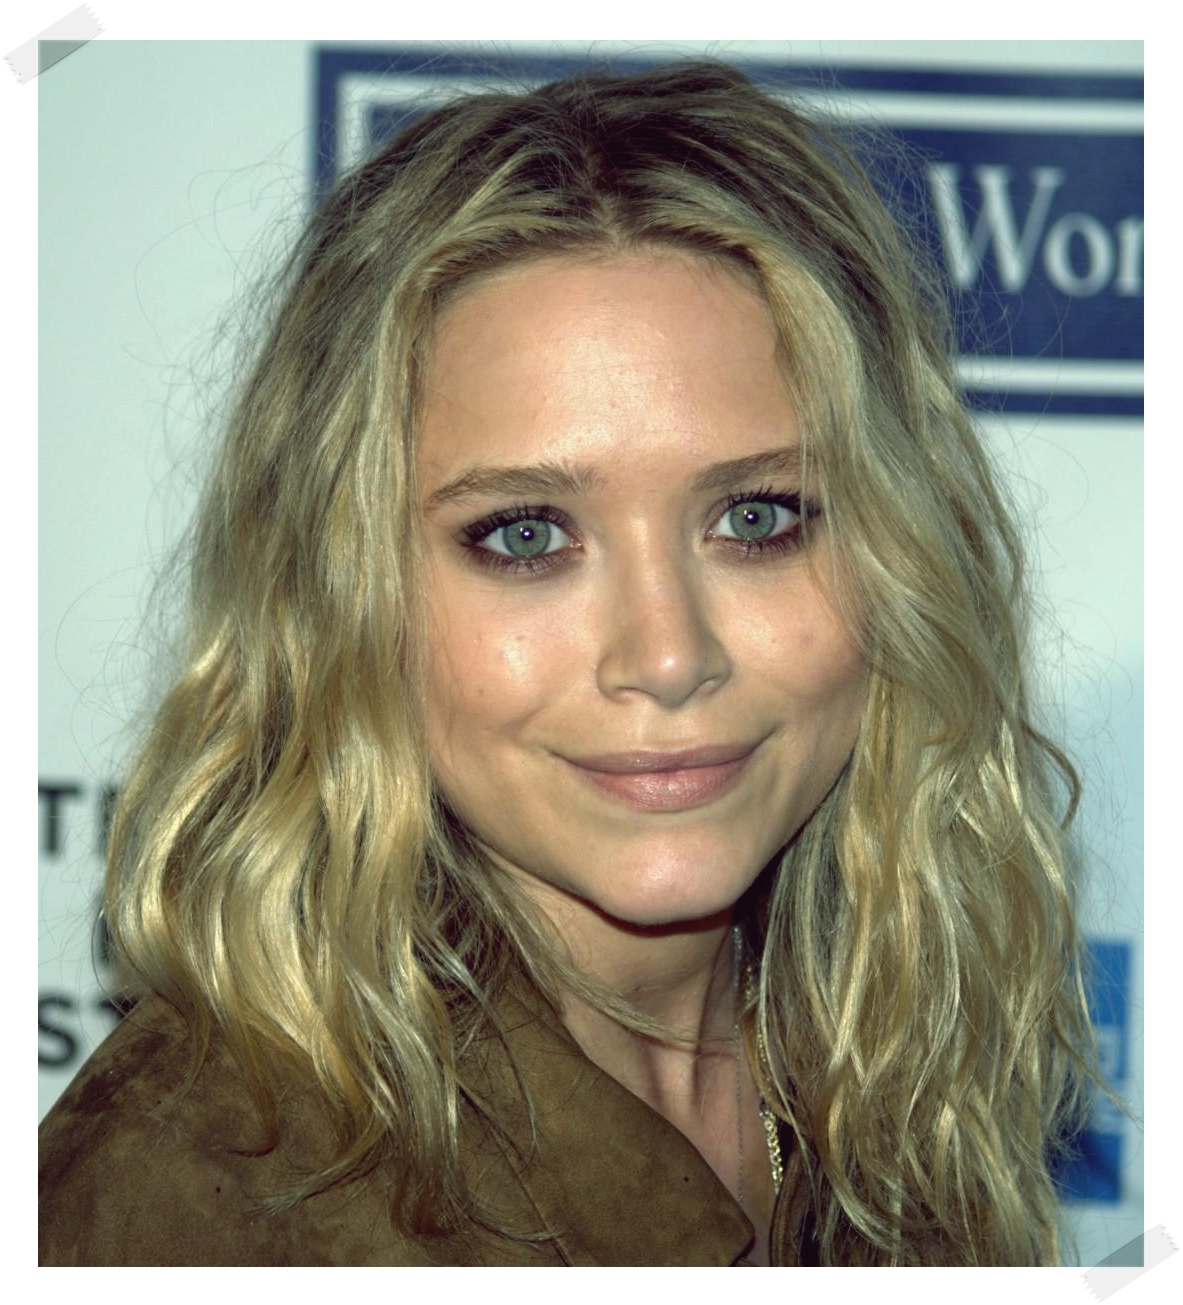 http://2.bp.blogspot.com/-69cty9vzD04/T3Cw0kjpqQI/AAAAAAAAAMk/cVb1djdb5lI/s1600/934_mary-kate-olsen-at-the-tribeca-film-festival-mary-kate-olsen-make-up-290783044.jpg